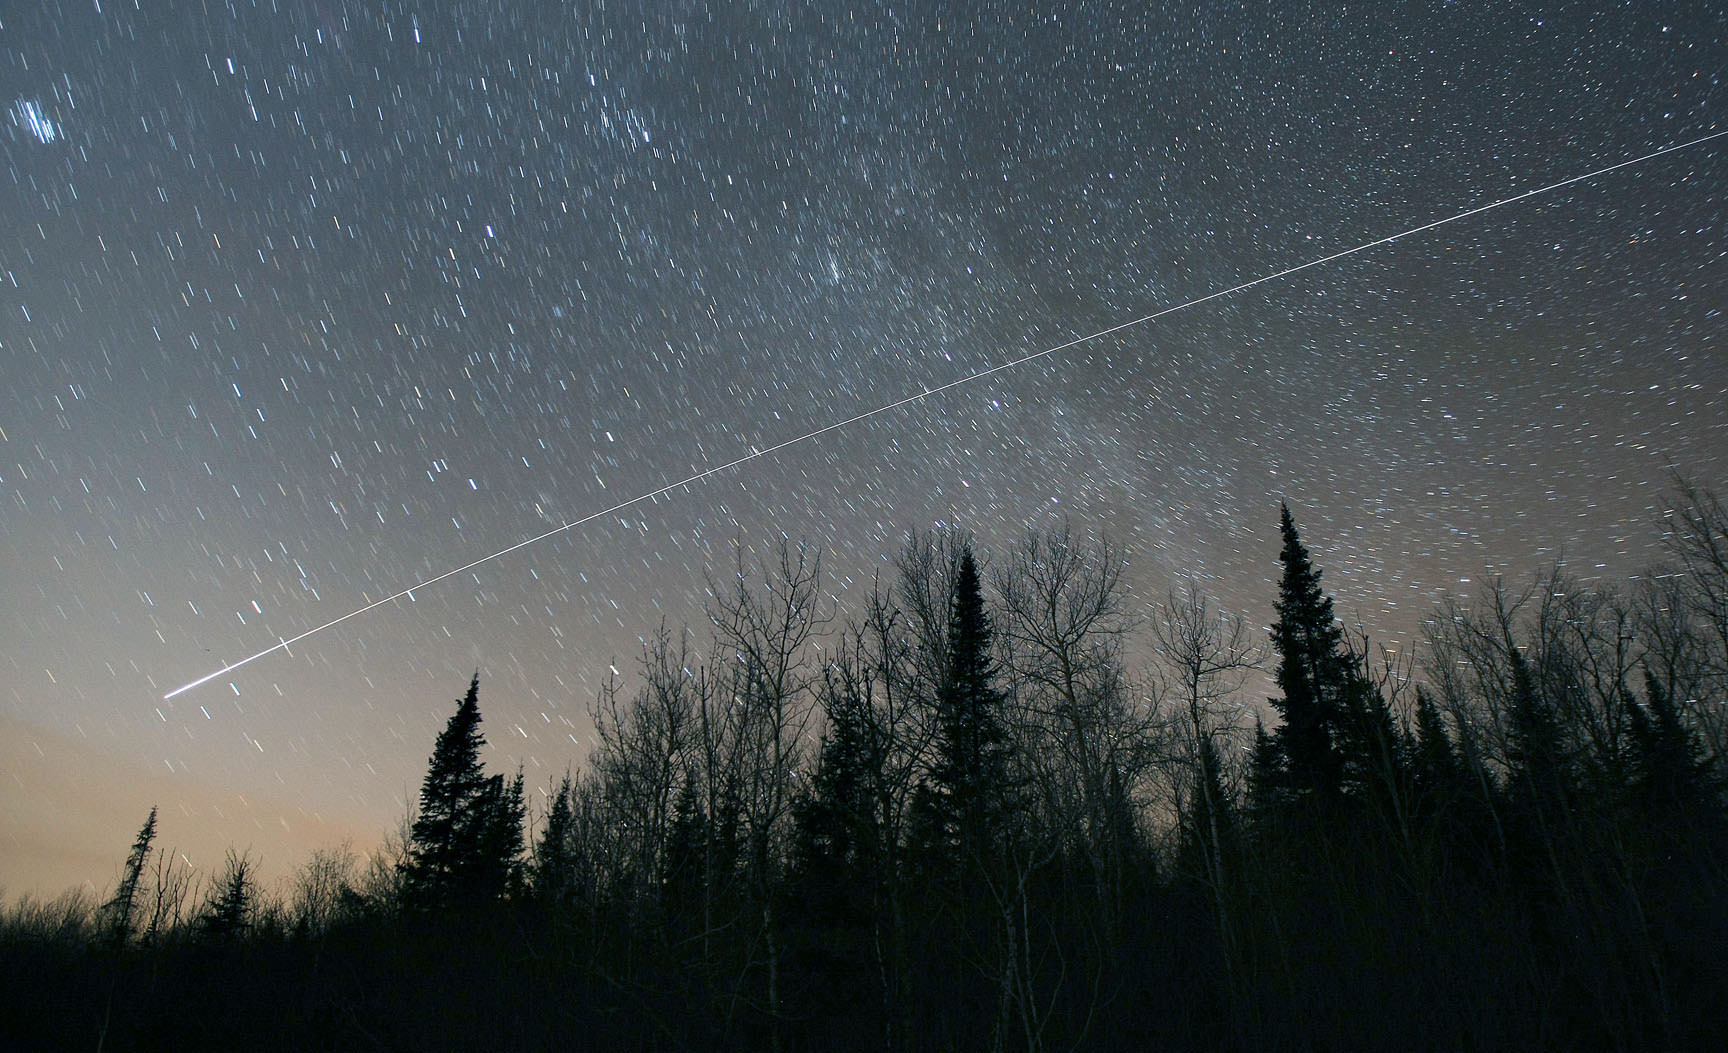 Time exposure showing the International Space Station making a bright pass across the northern sky. Credit: Bob King